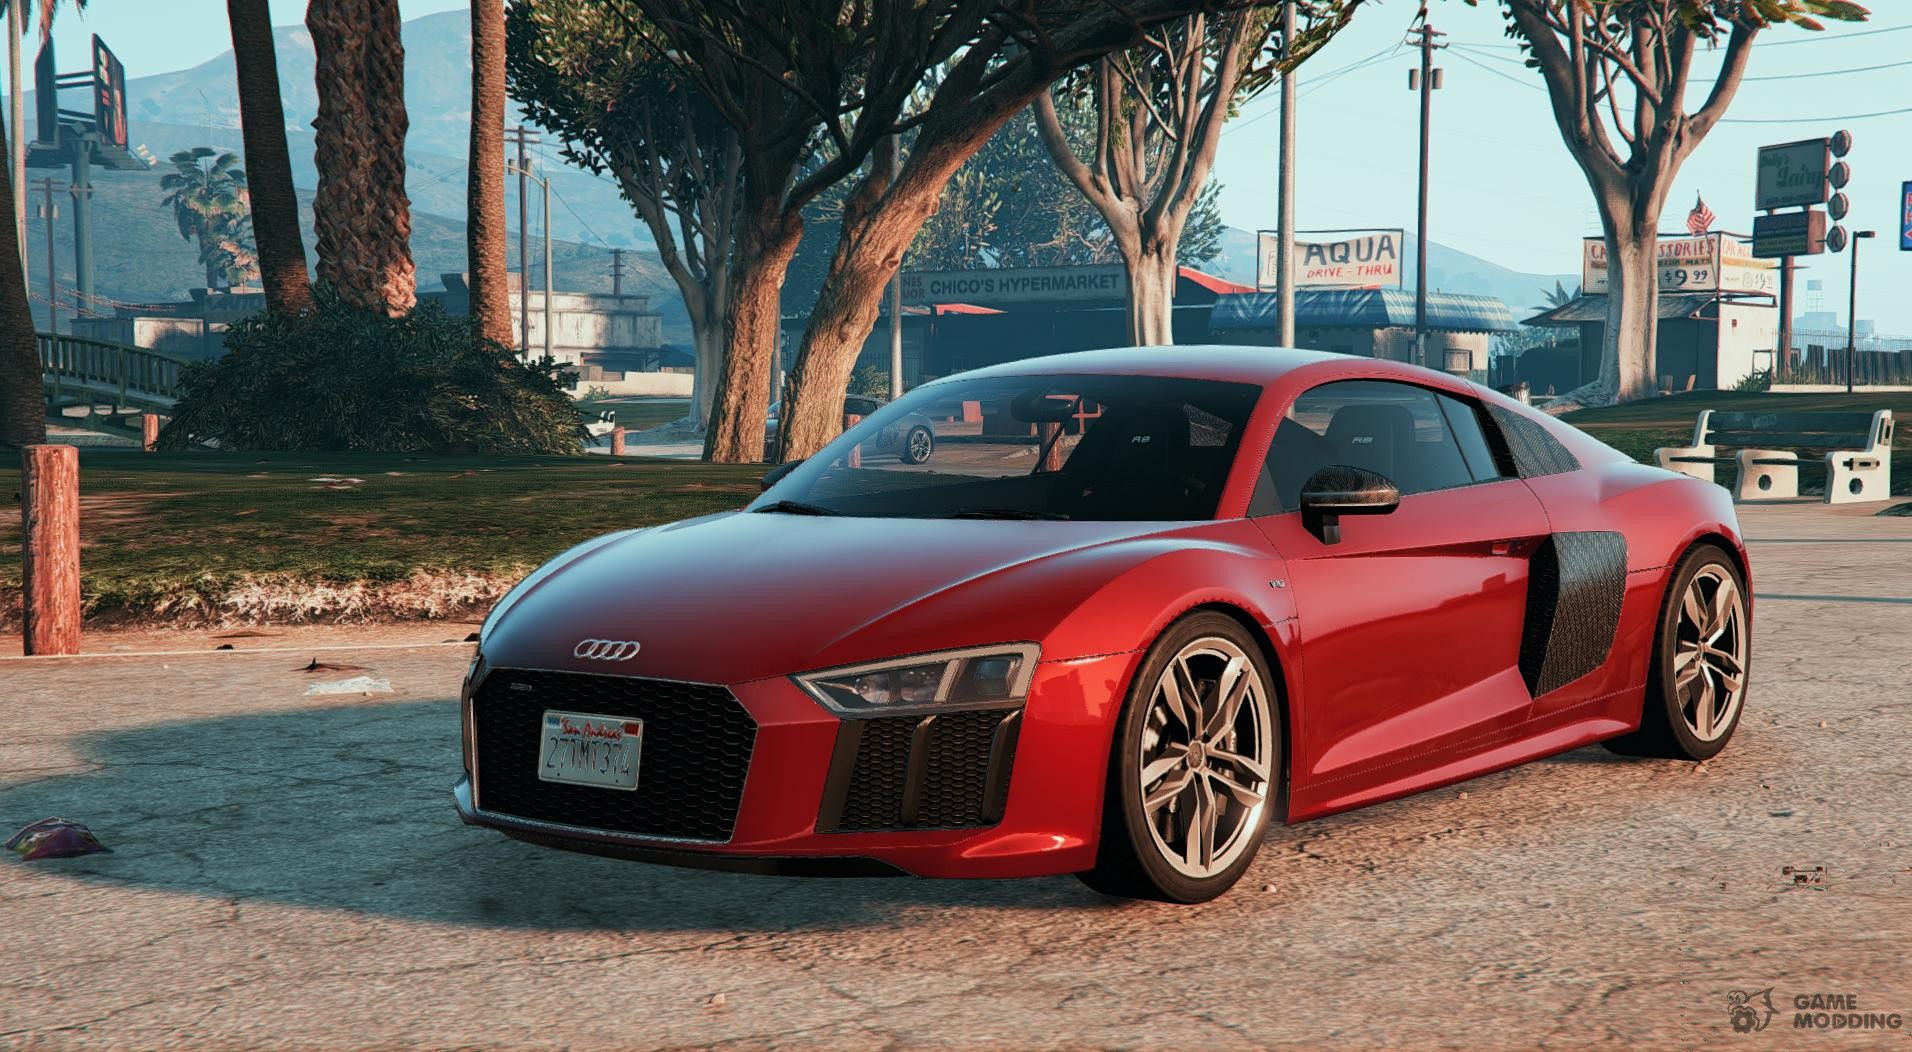 Obey 9F replace for GTA 5 Cheetah Audi R on aston martin cheetah, audi tt cheetah, beiber cheetah,